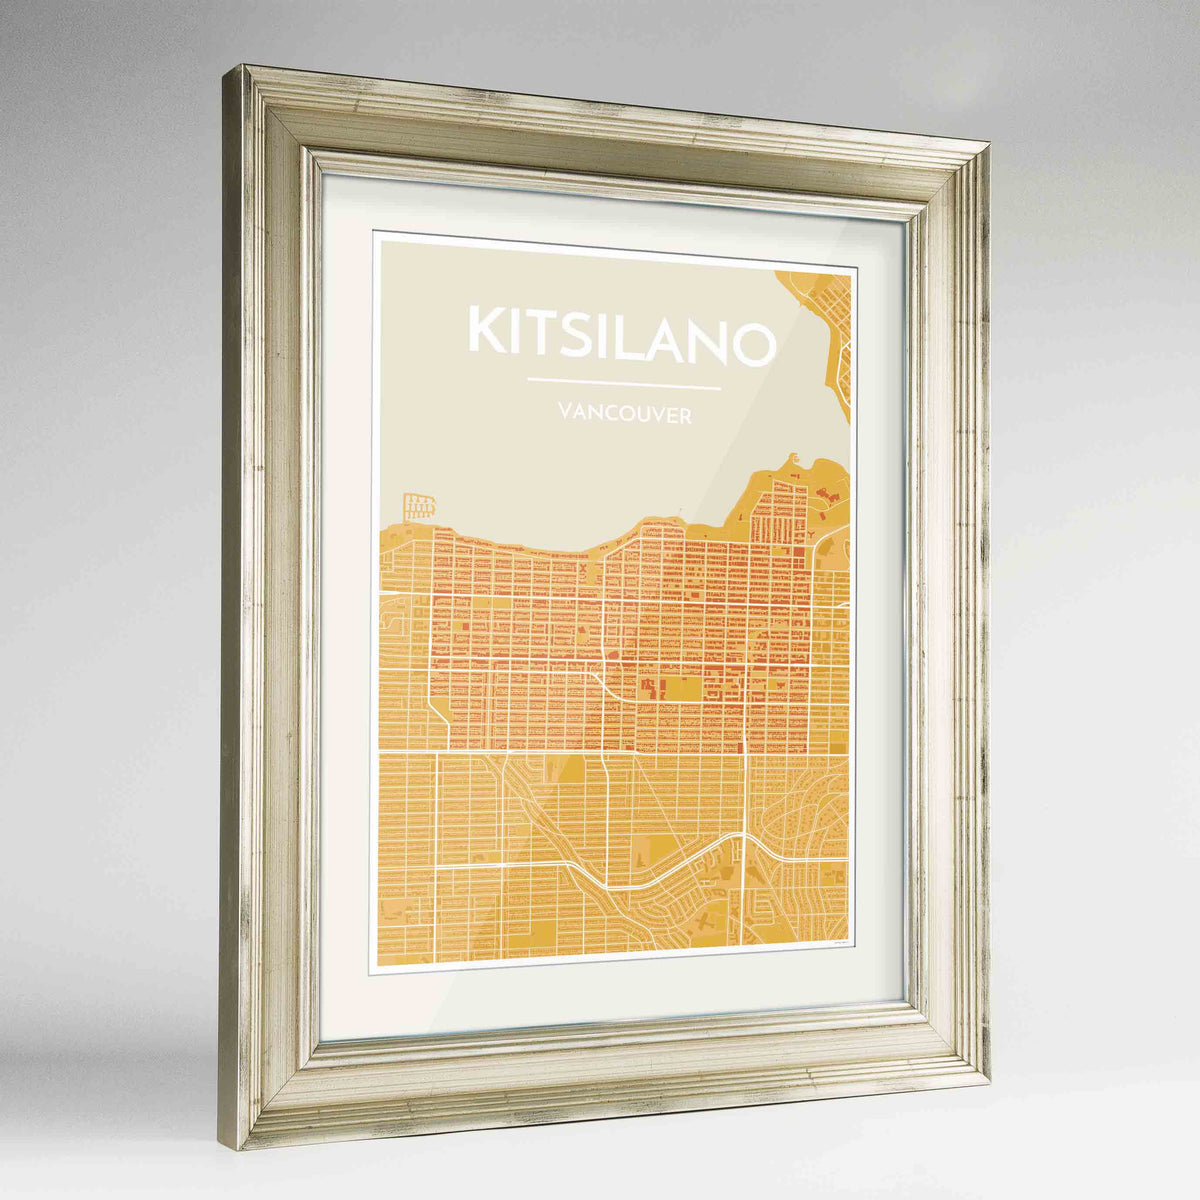 "Framed Kitsilano Vancouver Map Art Print 24x36"" Champagne frame Point Two Design Group"